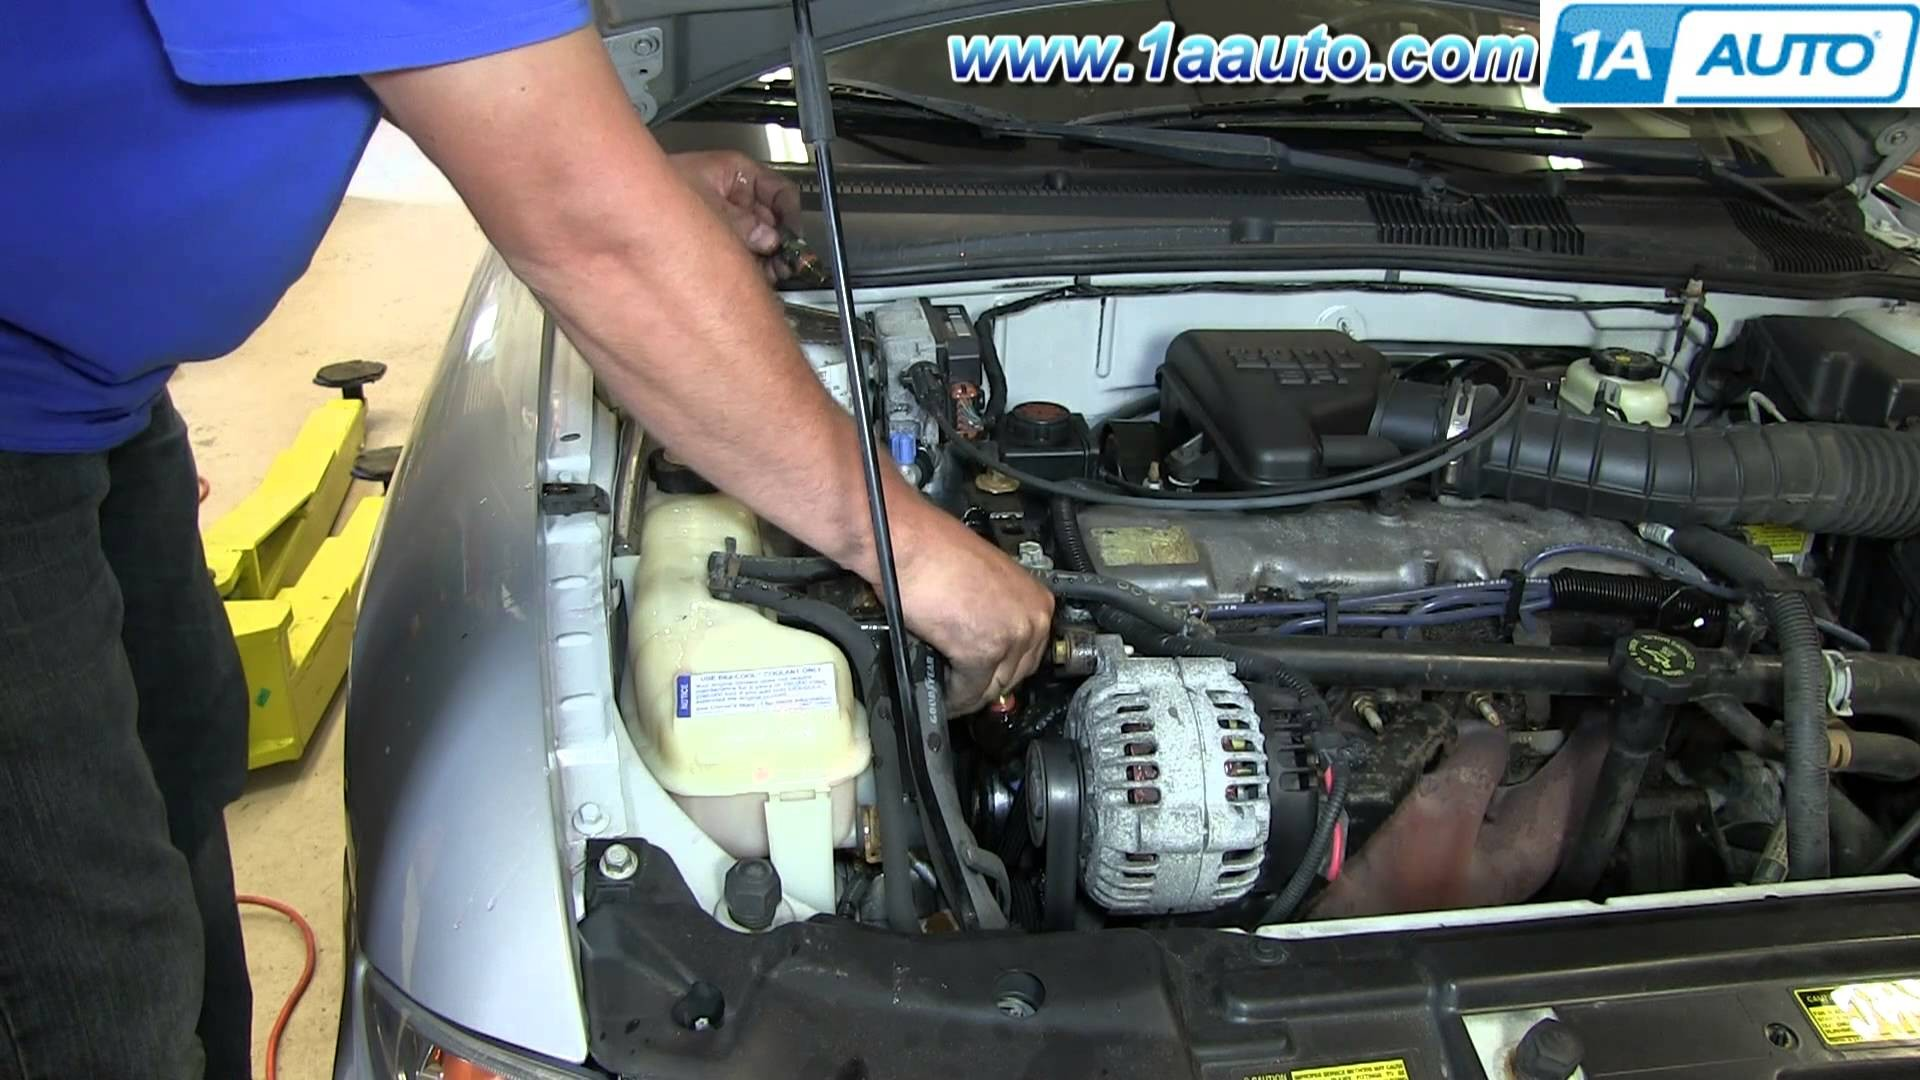 1998 Chevy Cavalier Engine Diagram How To Install Replace Coolant Temperature Sensor 1995 02